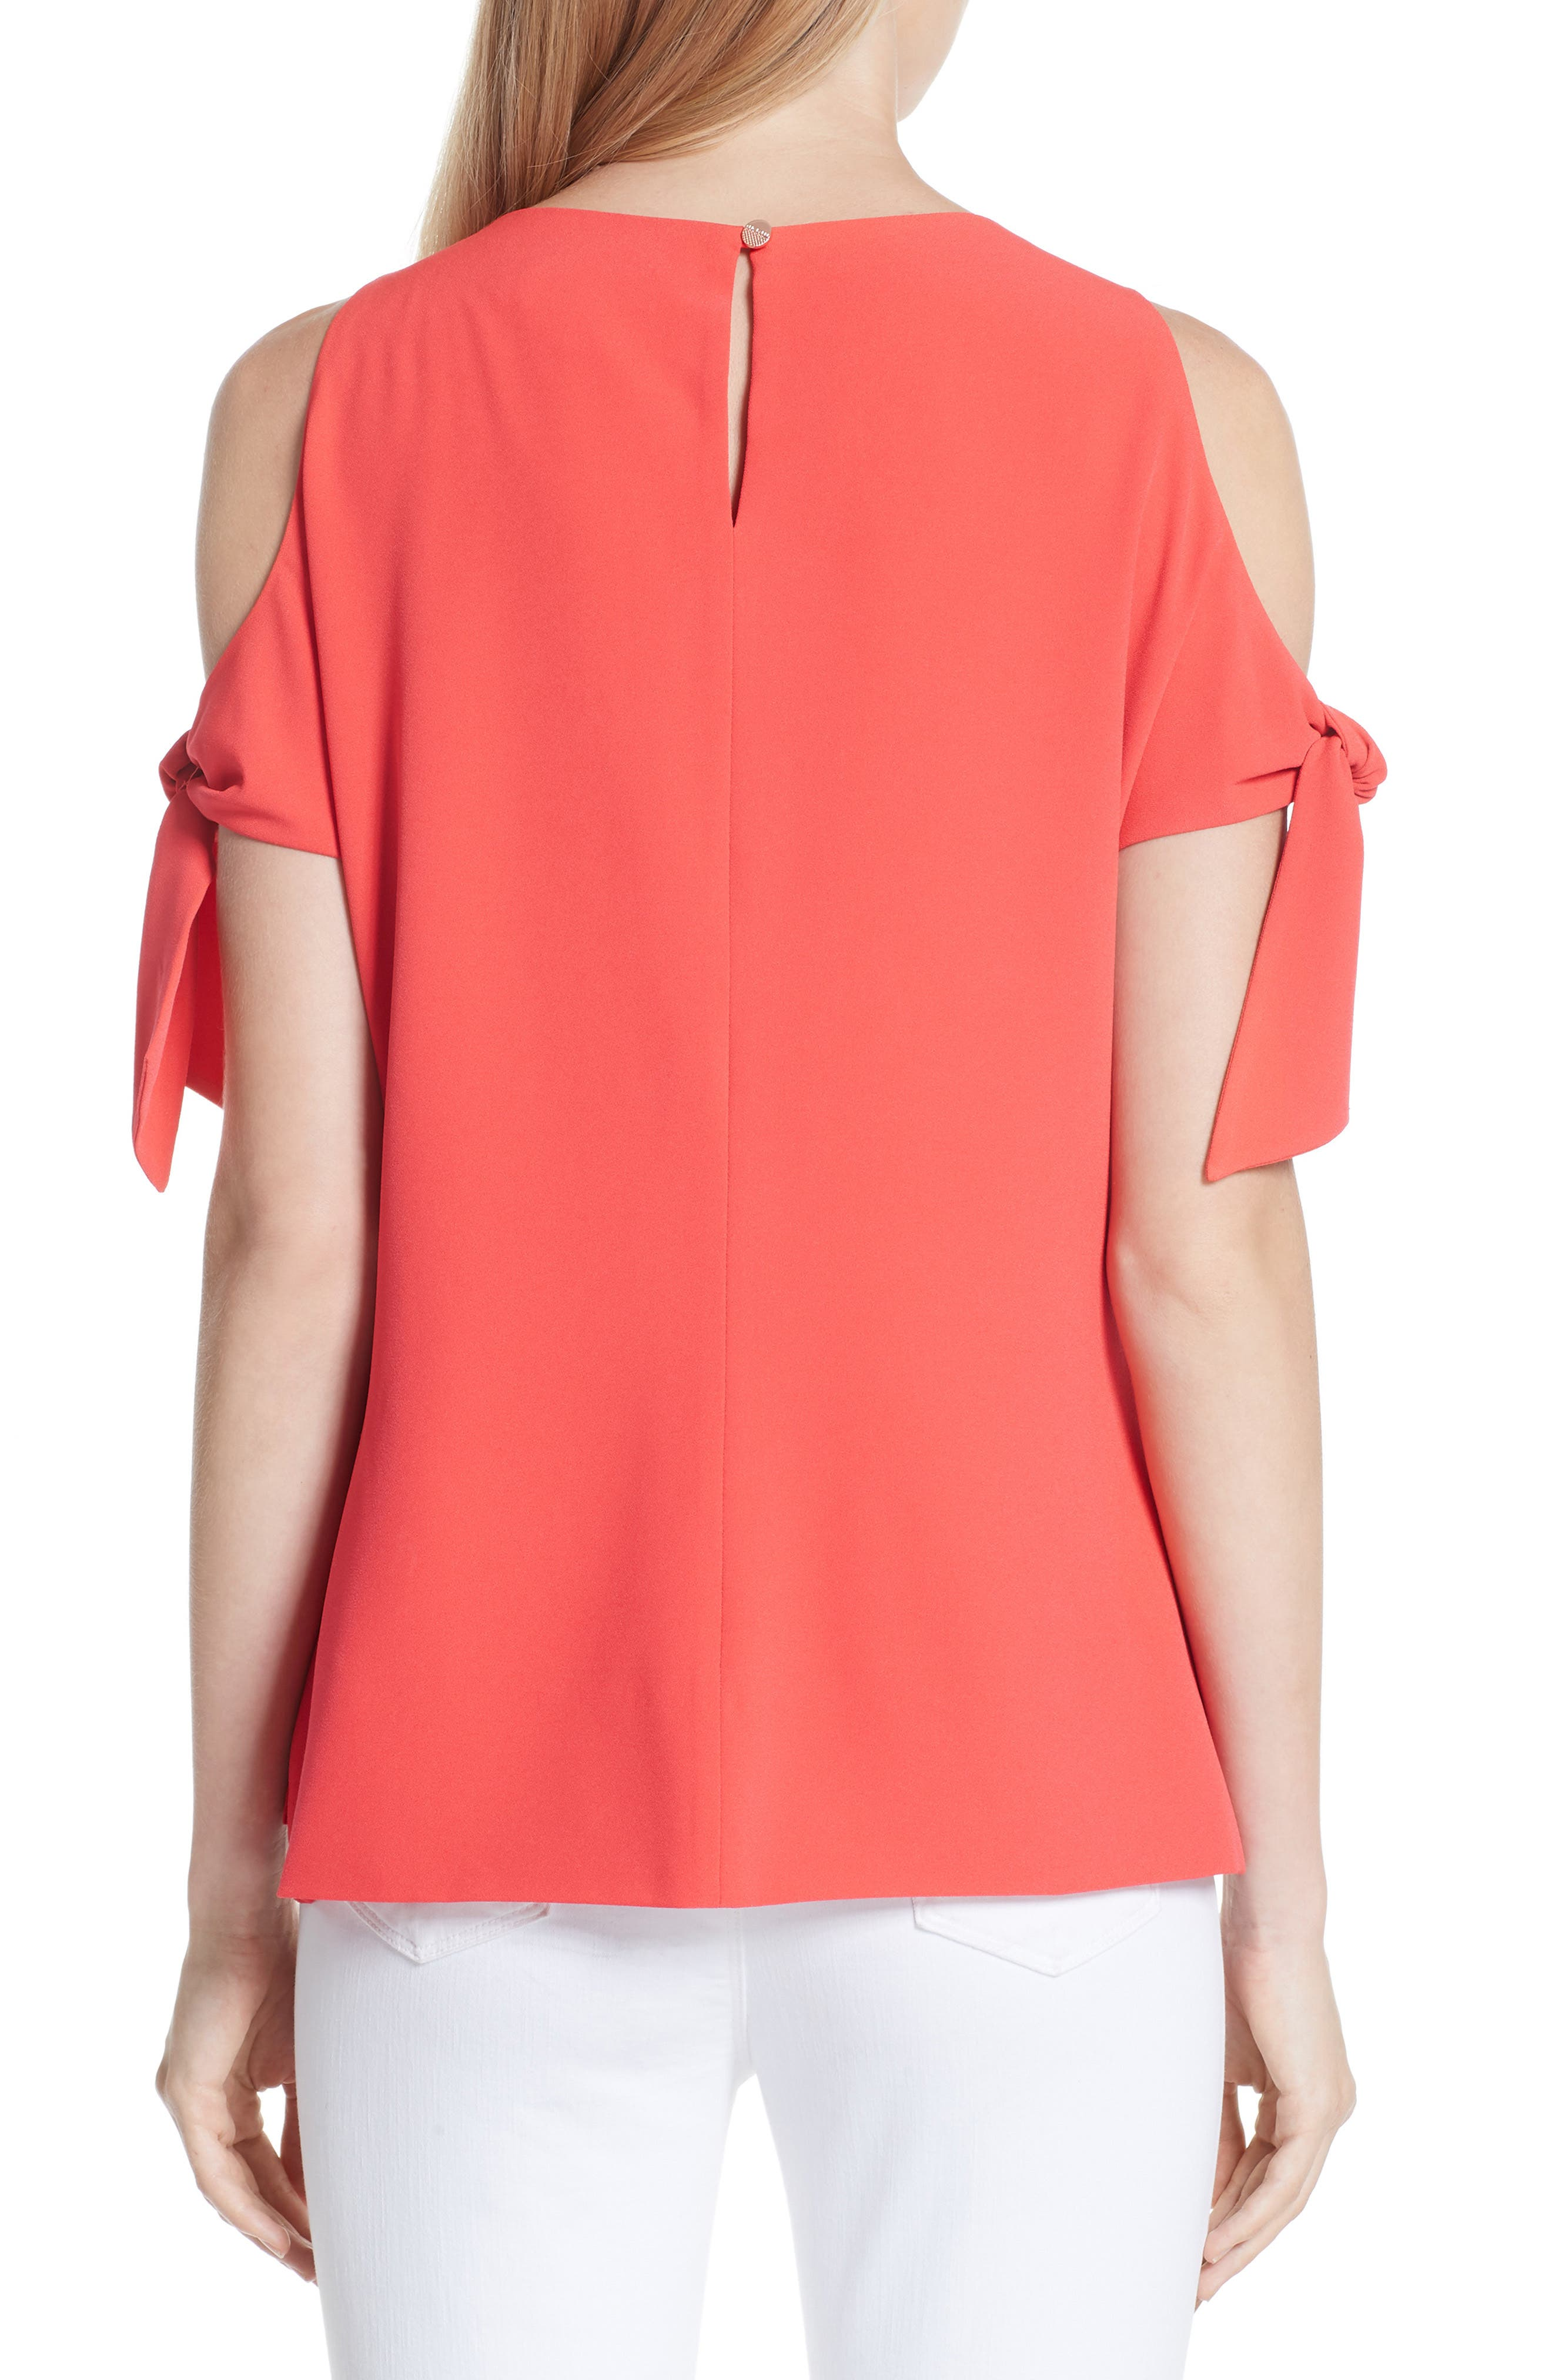 Narva Colour by Numbers Twist Cuff Shirt,                             Alternate thumbnail 4, color,                             660